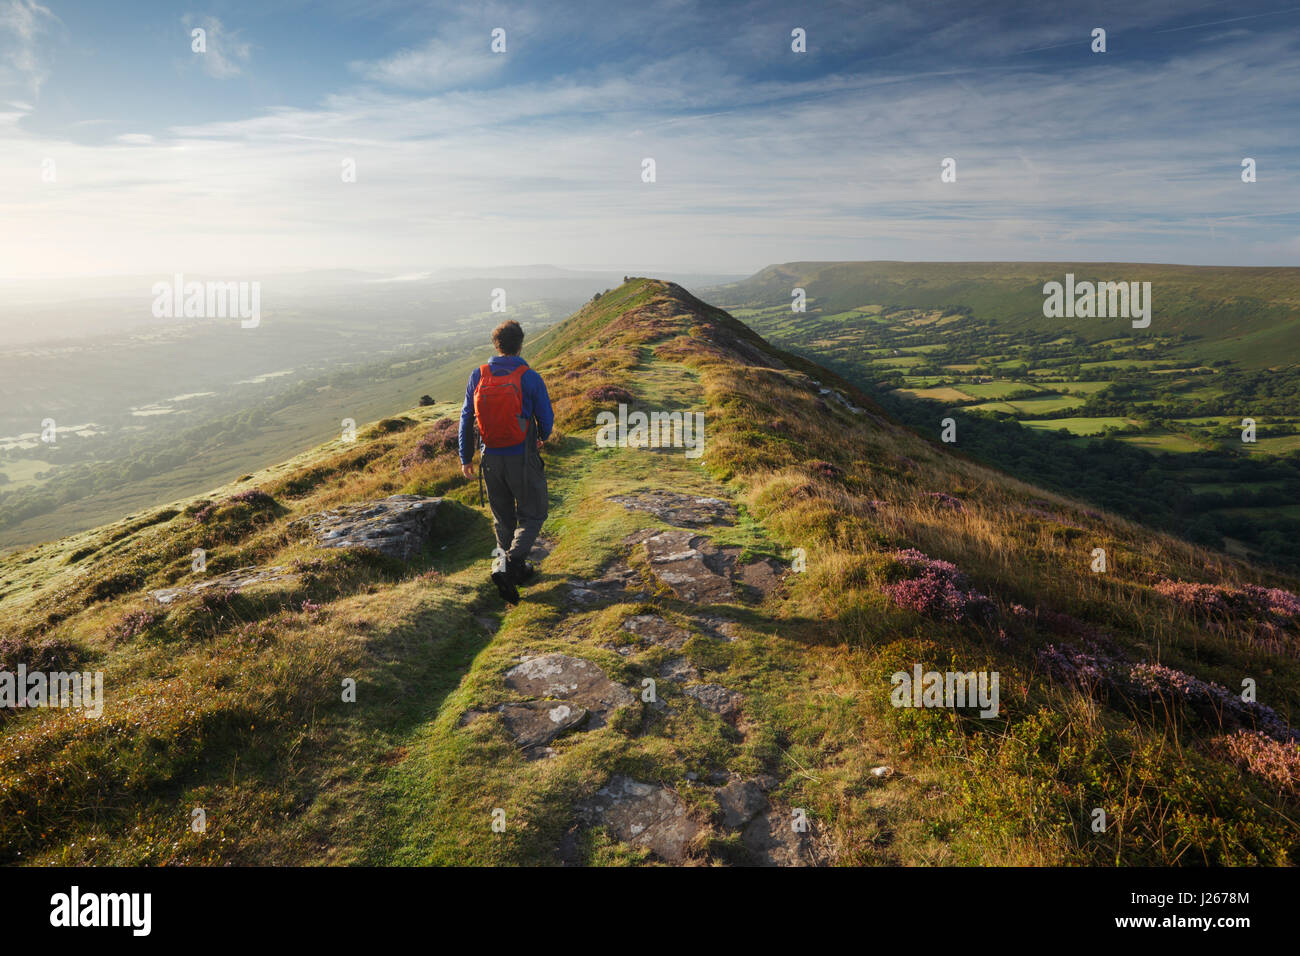 Hillwalker auf Schwarze Hügel in den Black Mountains. Brecon-Beacons-Nationalpark, Wales, UK. Stockbild